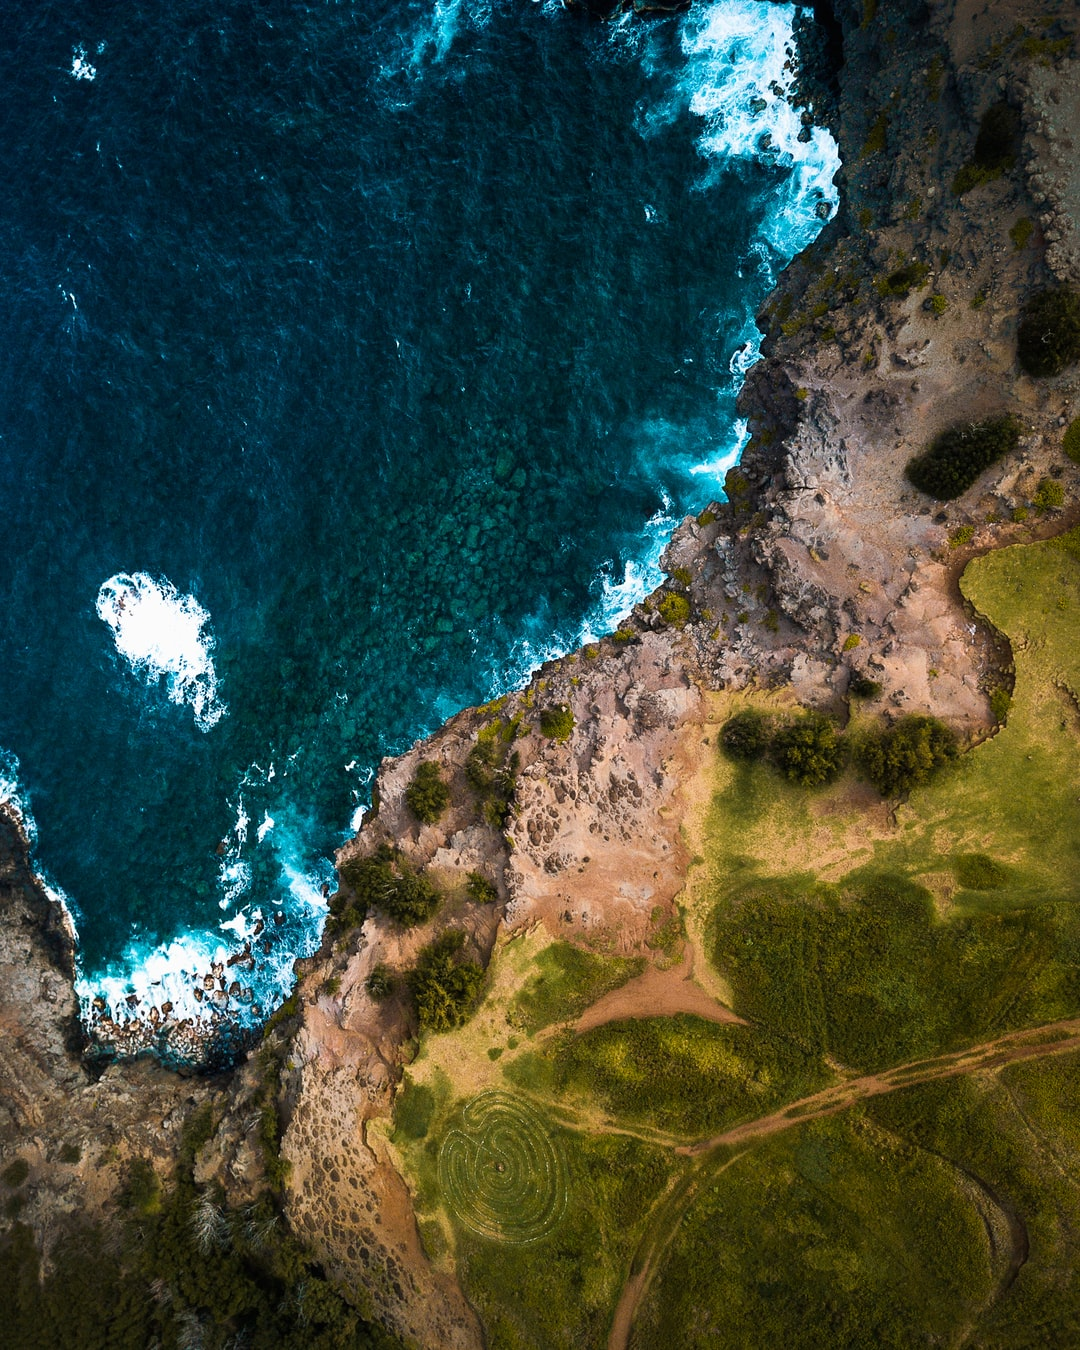 This shot is taken from the start of the Acid War Zone Trail. I was very tentative to put the drone up in the air here due to the strong winds but I'm glad I managed to fly straight up in the air and get this shot without too much risk. The North West Coast of Maui is oftened overlooked in favour of more popular destinations.... but these coastlines were very rugged and extremely fascinating to me. I'd highly recommend the trip.